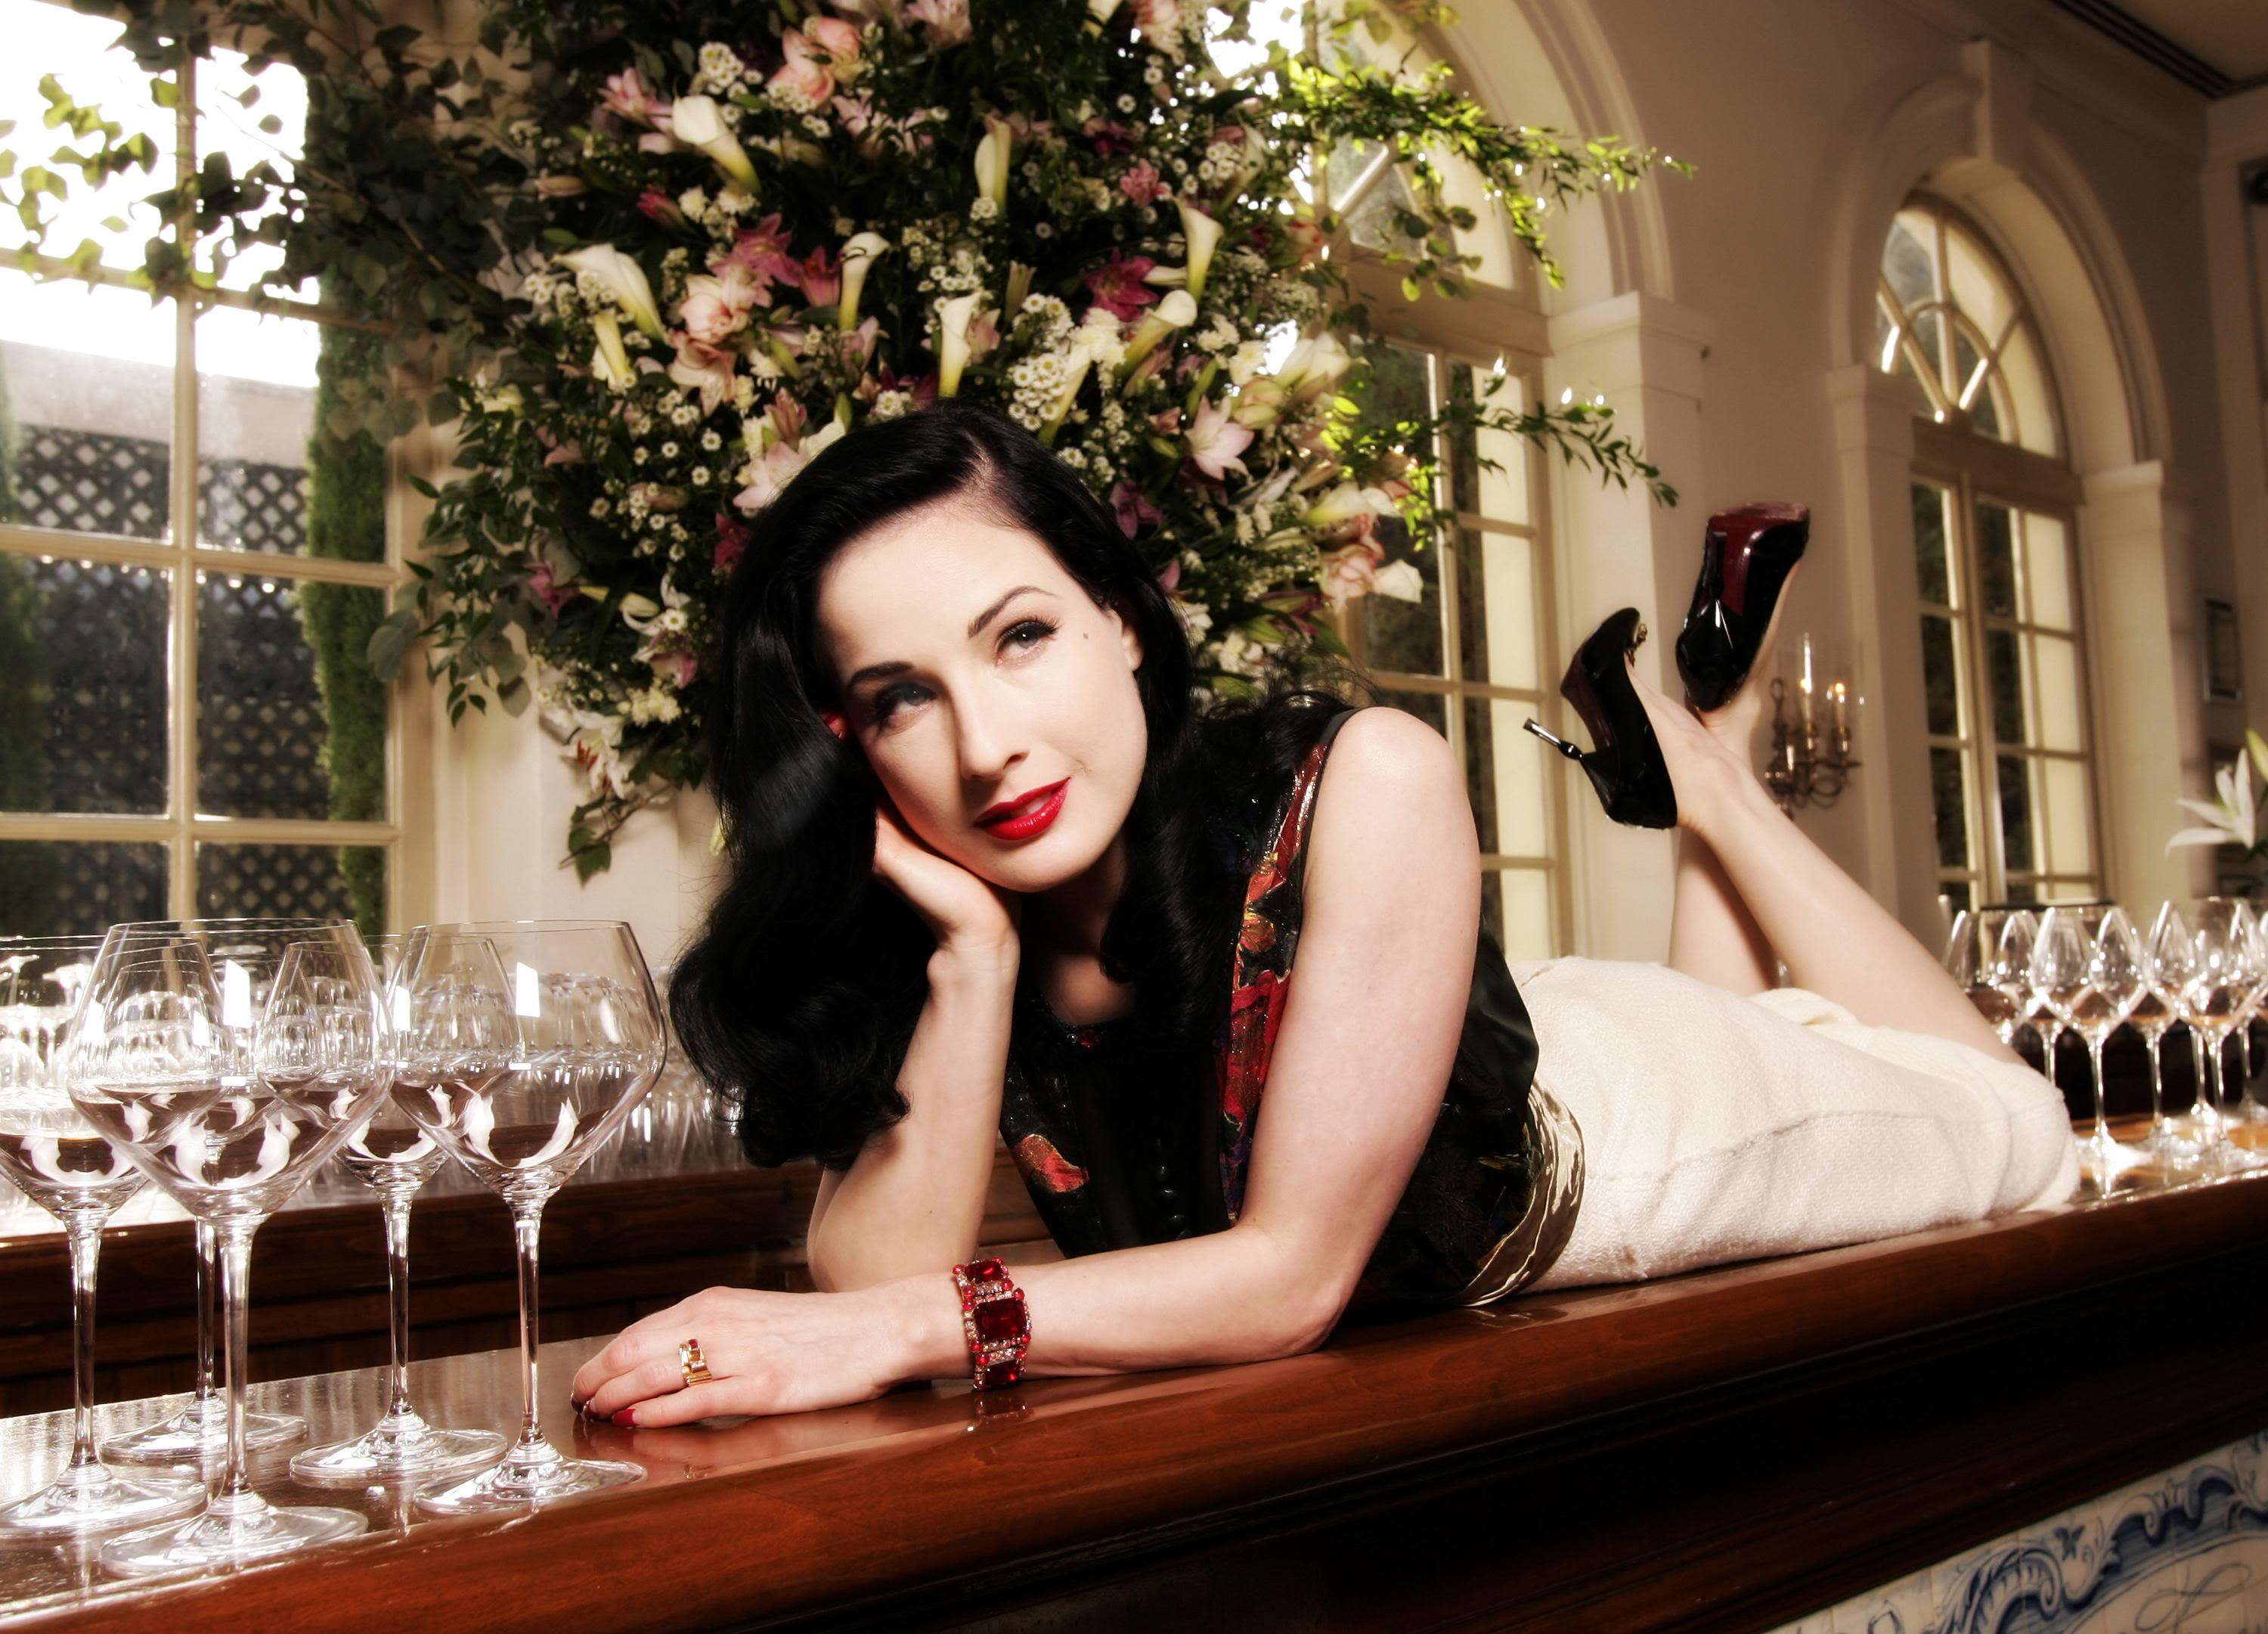 6 Hd Dita Von Teese Wallpapers